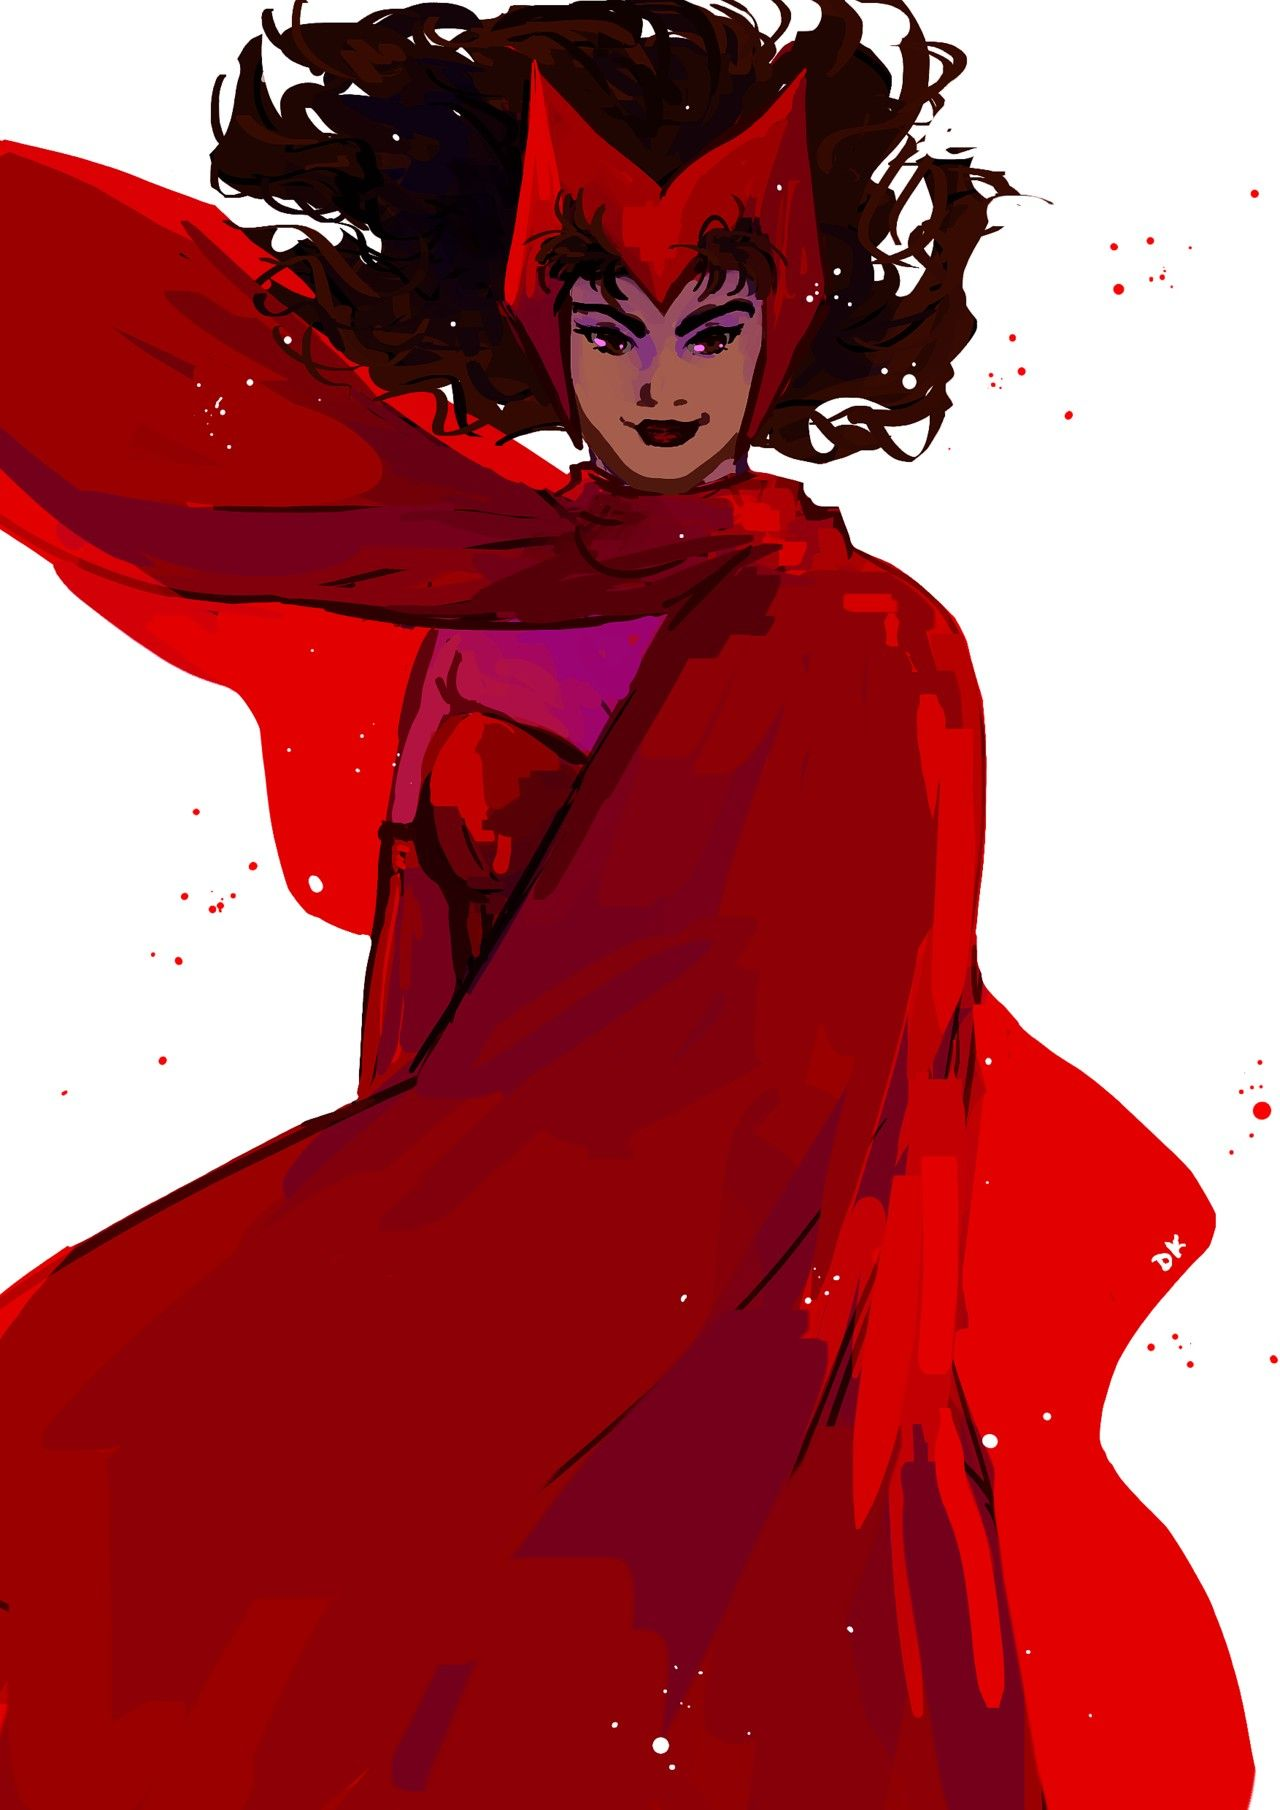 Pin by Kaitlyn Wilson on x men   Marvel, Scarlet witch ...